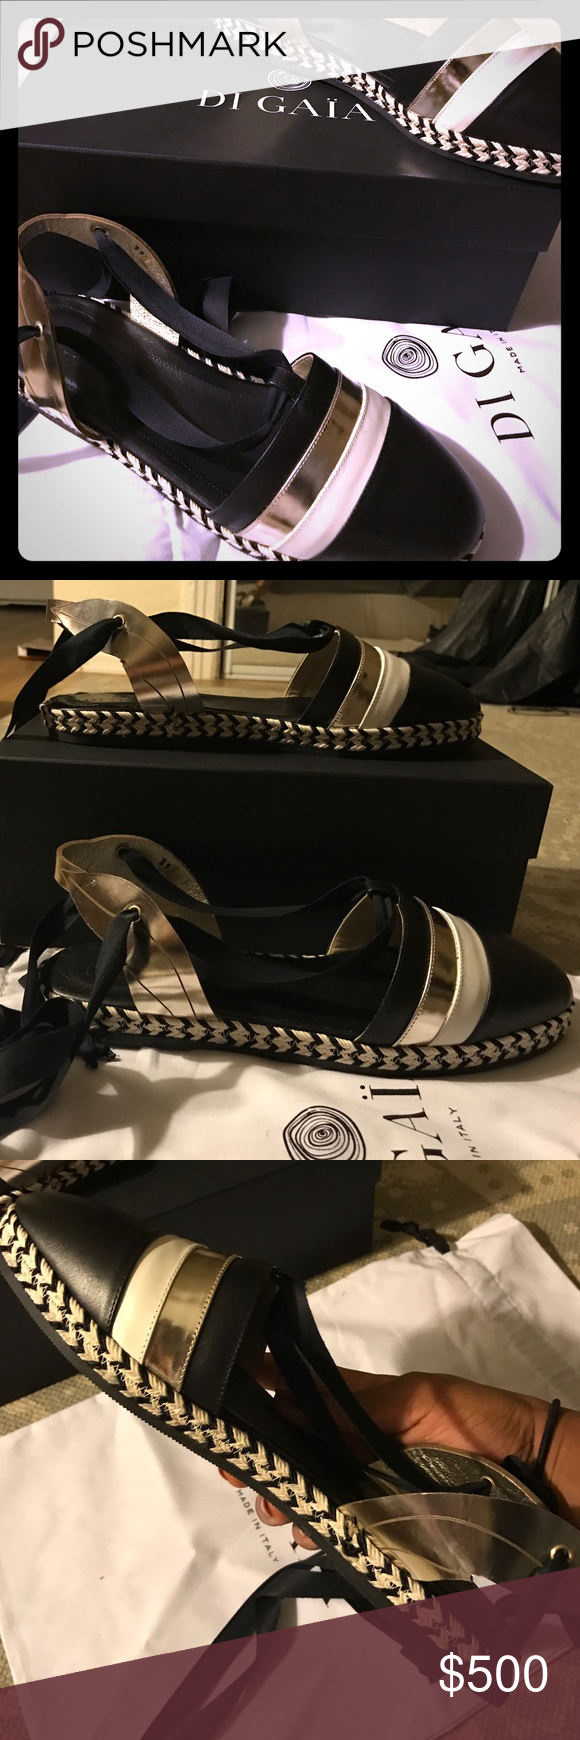 DI GÄIA Italian Sandals These sandals were inspired by the primal Mother Earth goddess when creating this luxury shoe. DI GAIA's collection is handcrafted from ultra soft Italian leather and features soft silk for wrapping around the ankle. DI GÄIA Shoes Sandals